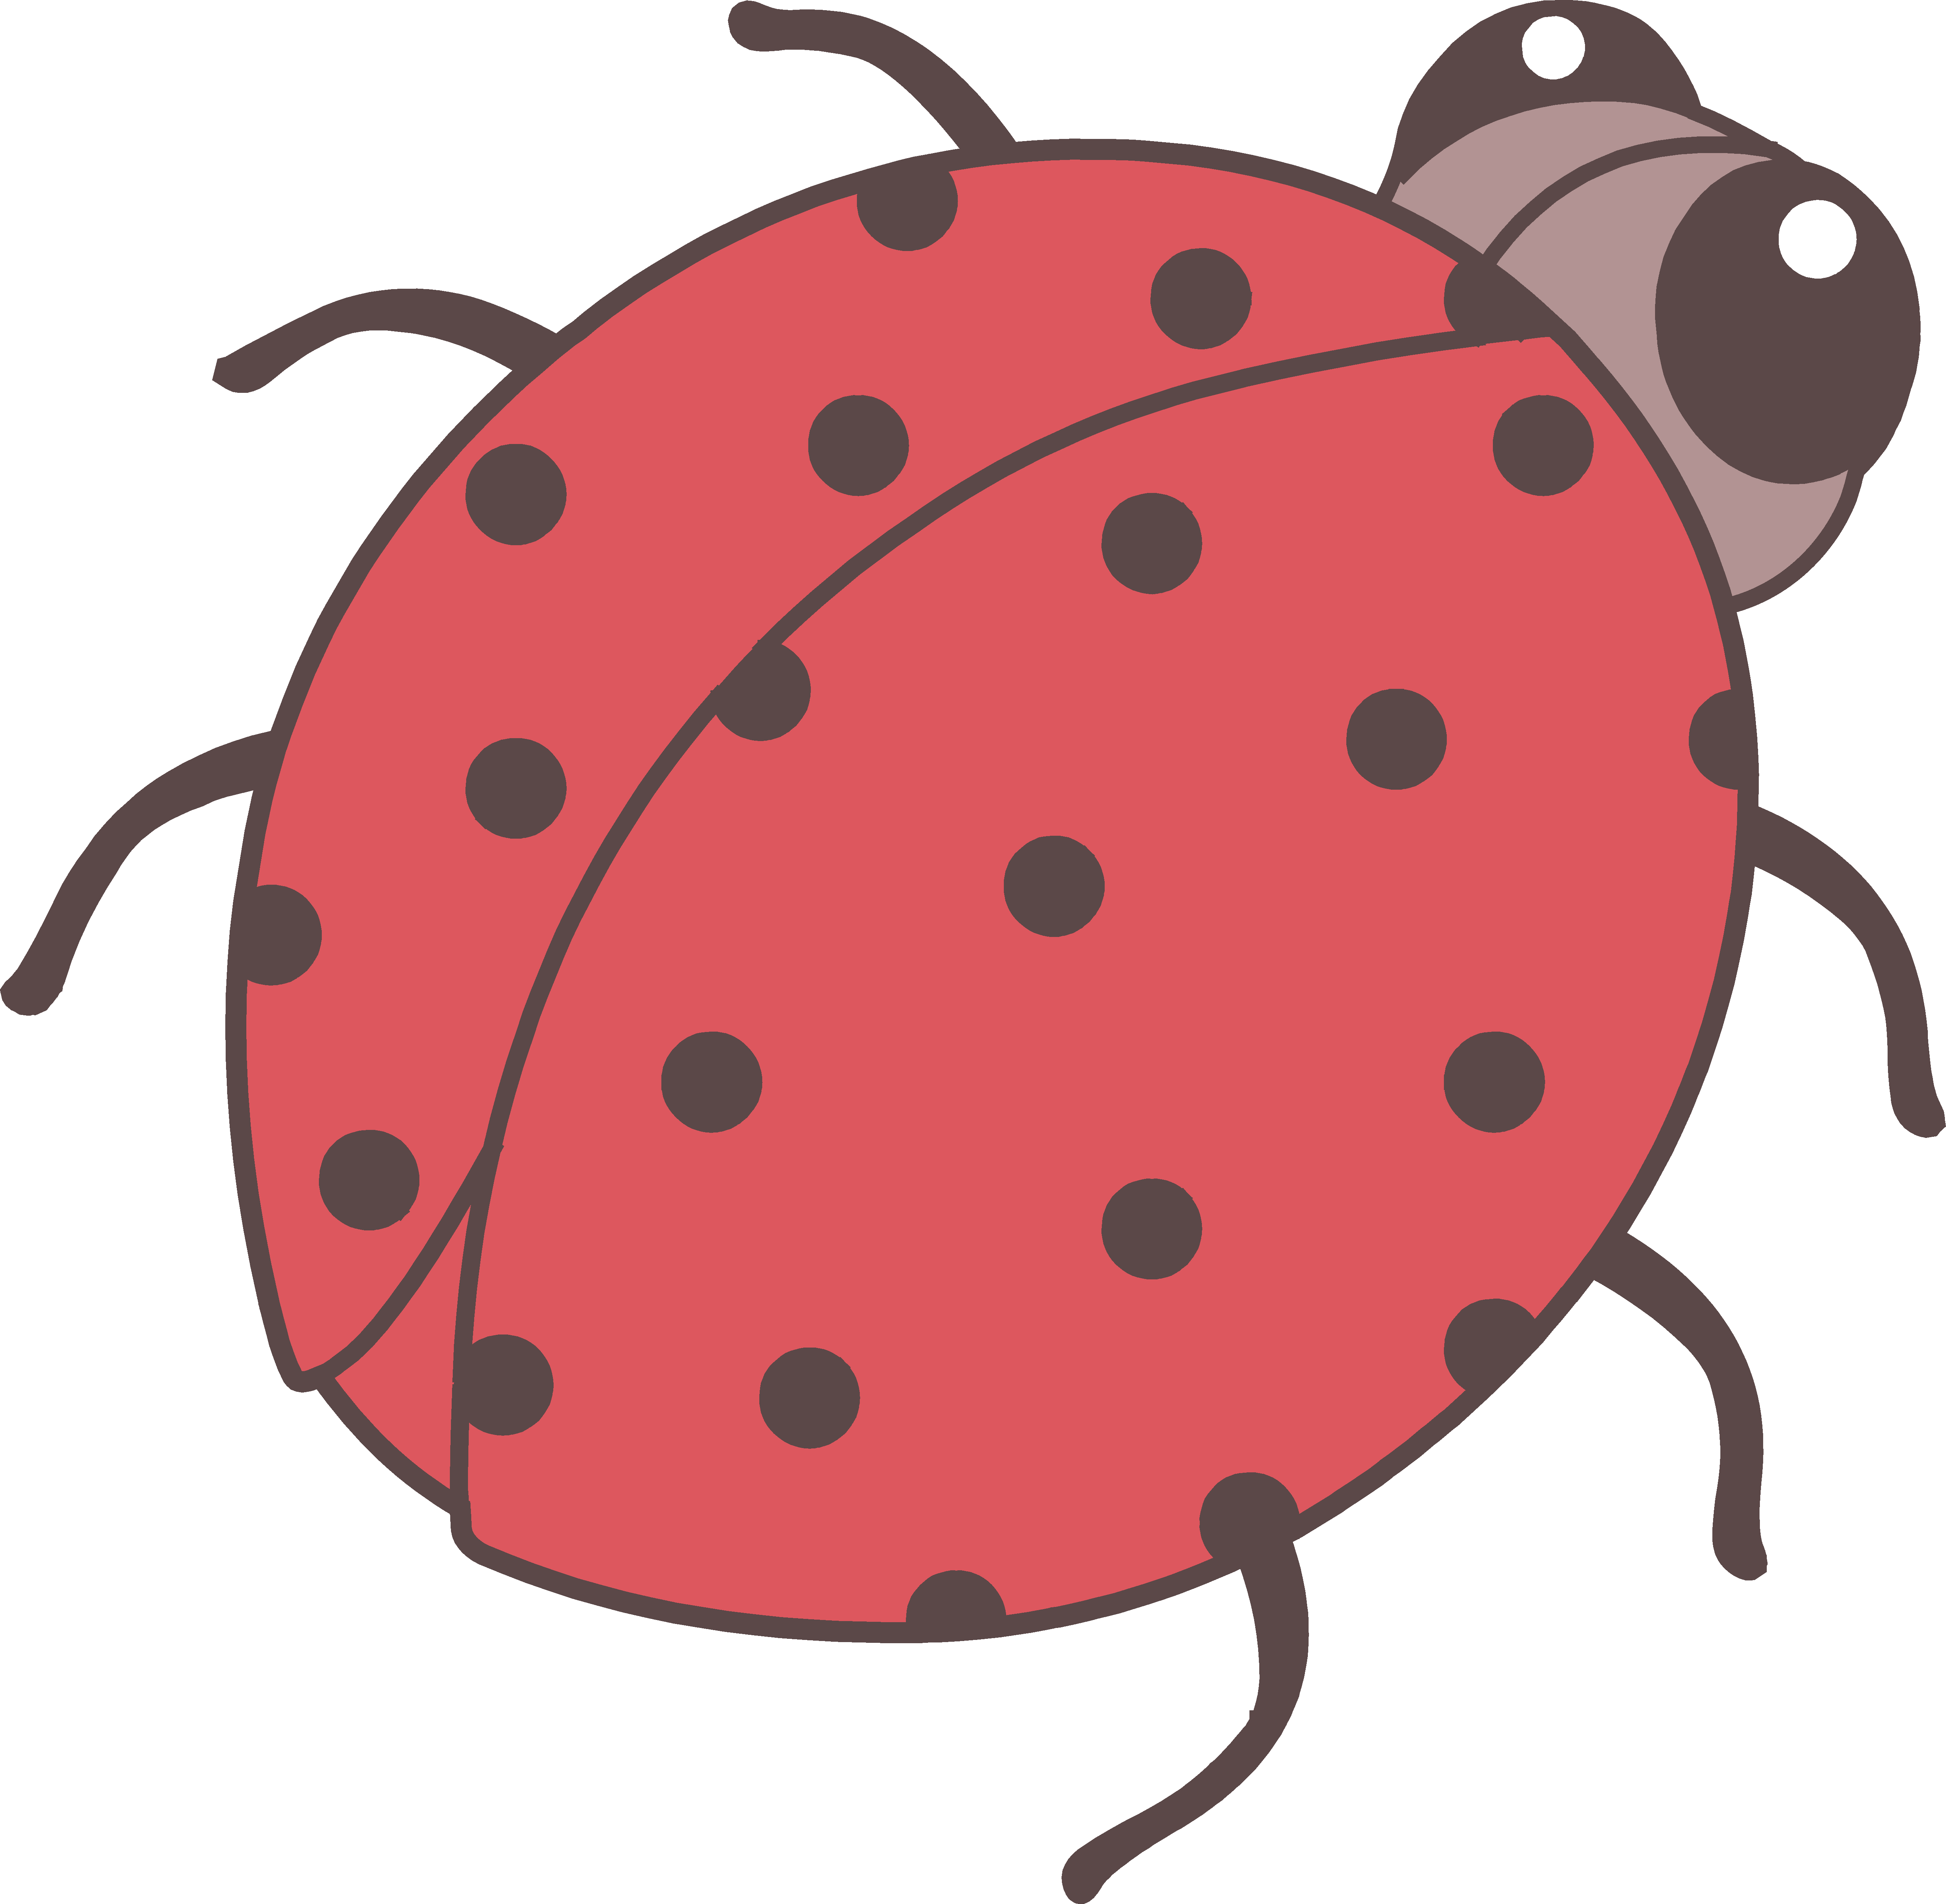 graphic royalty free download Bug drawing at getdrawings. Bugs clipart cute cartoon